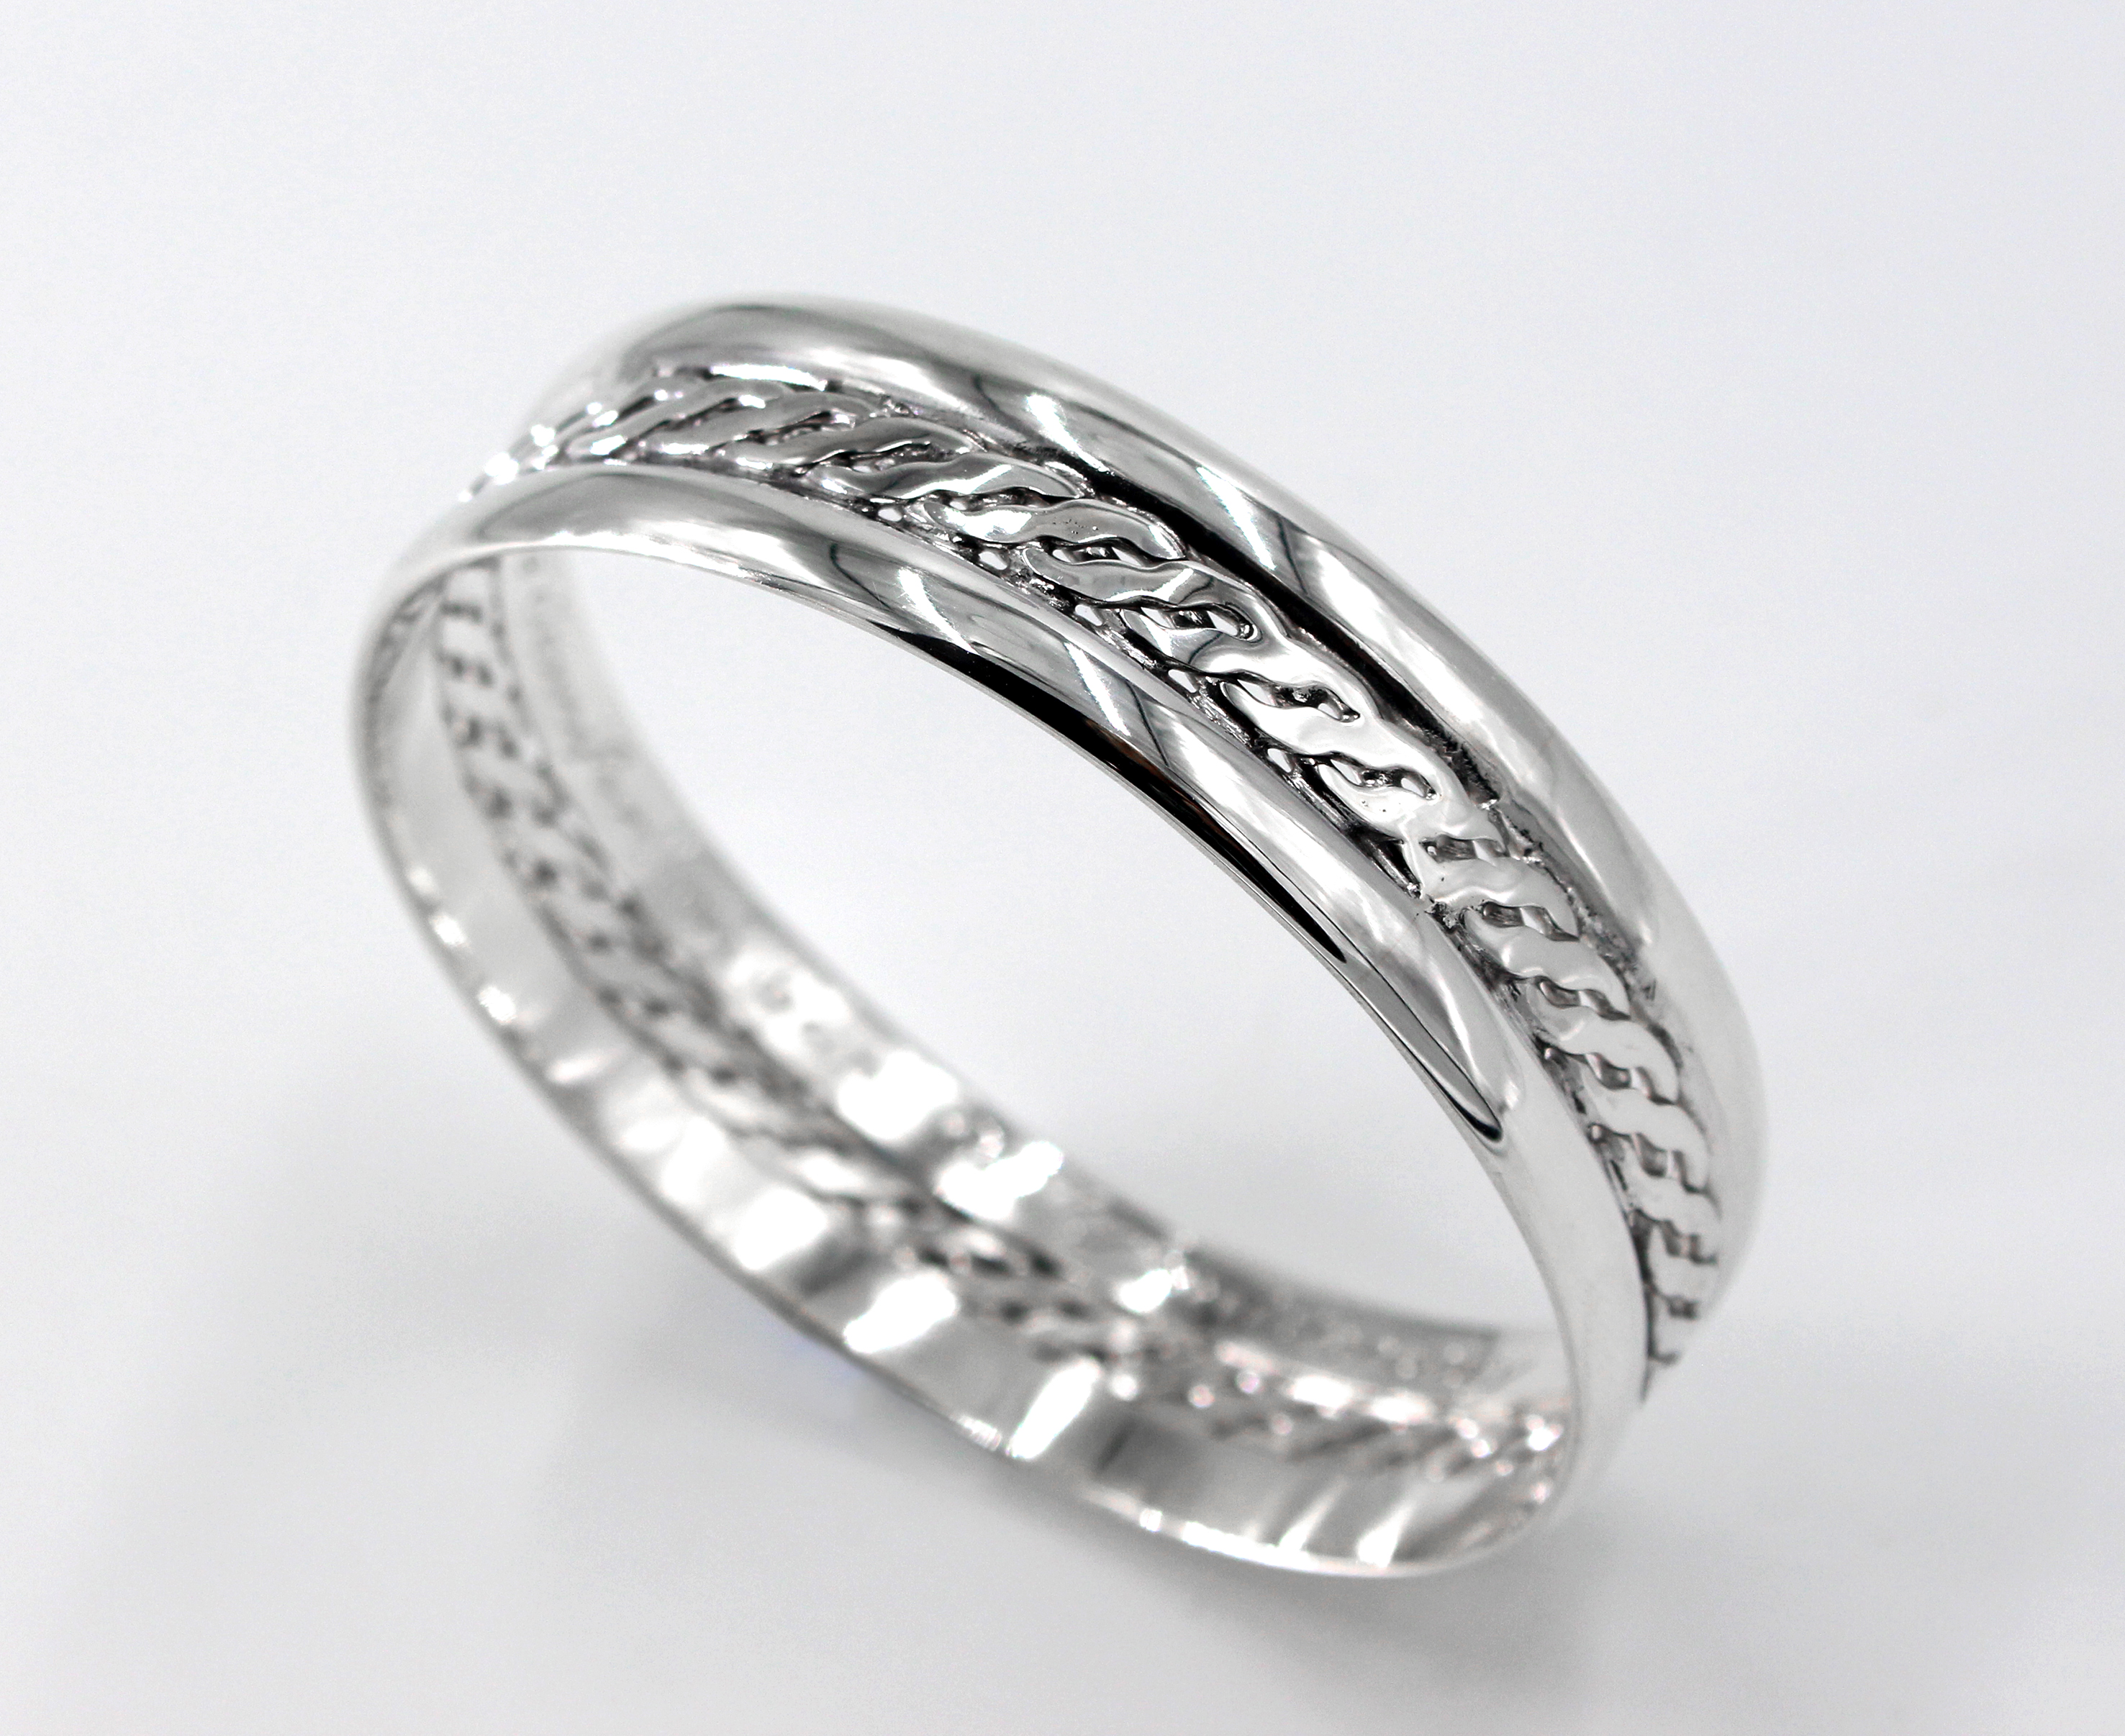 Wide sterling silver bangle with a woven centre and engraved message